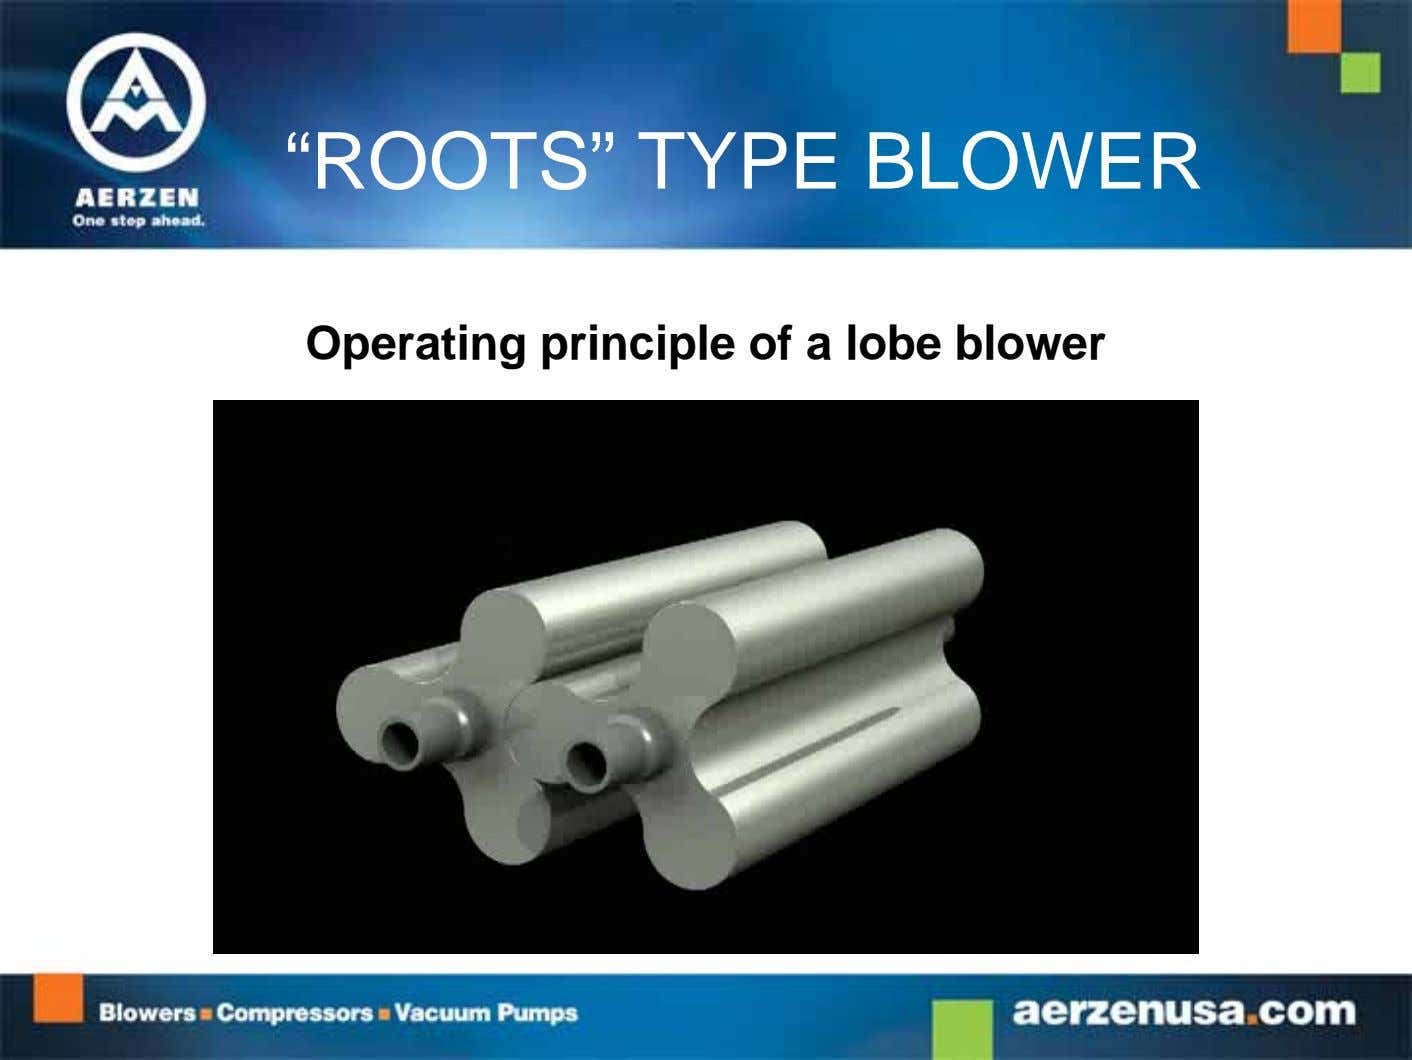 """ROOTS"" TYPE BLOWER Operating principle of a lobe blower"